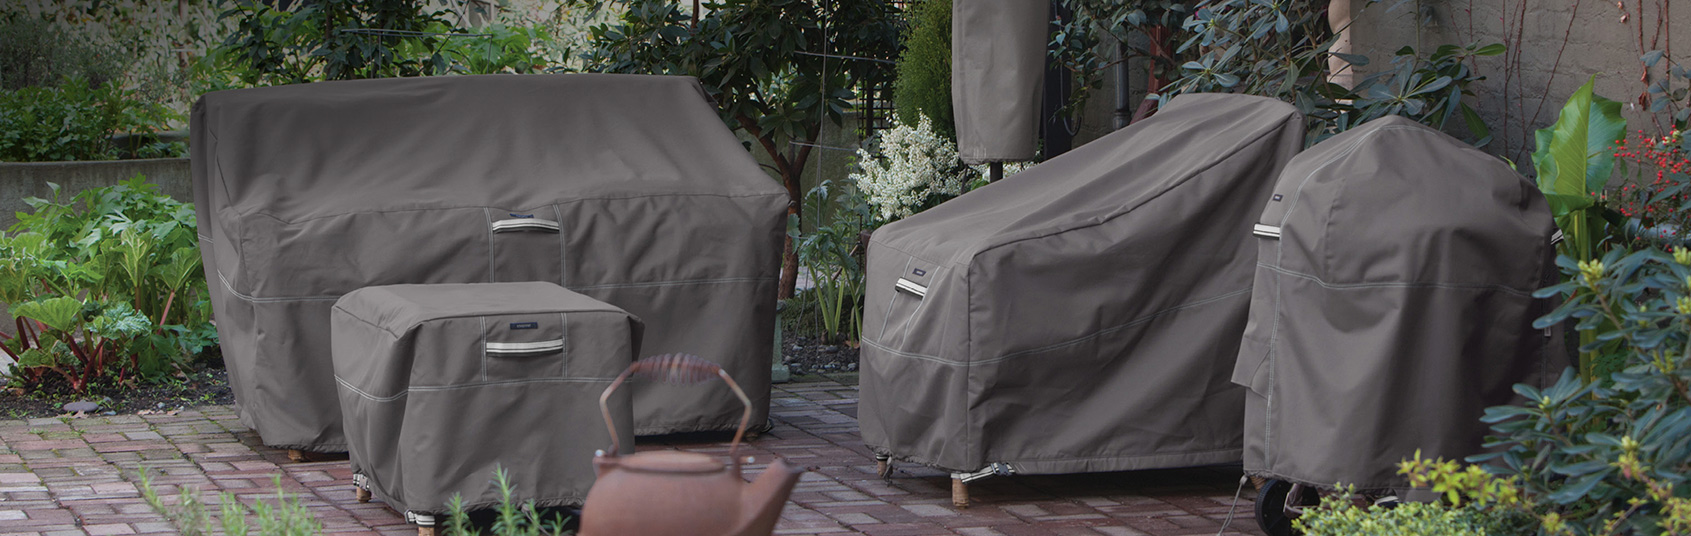 outdoor covers for garden furniture. covers outdoor for garden furniture